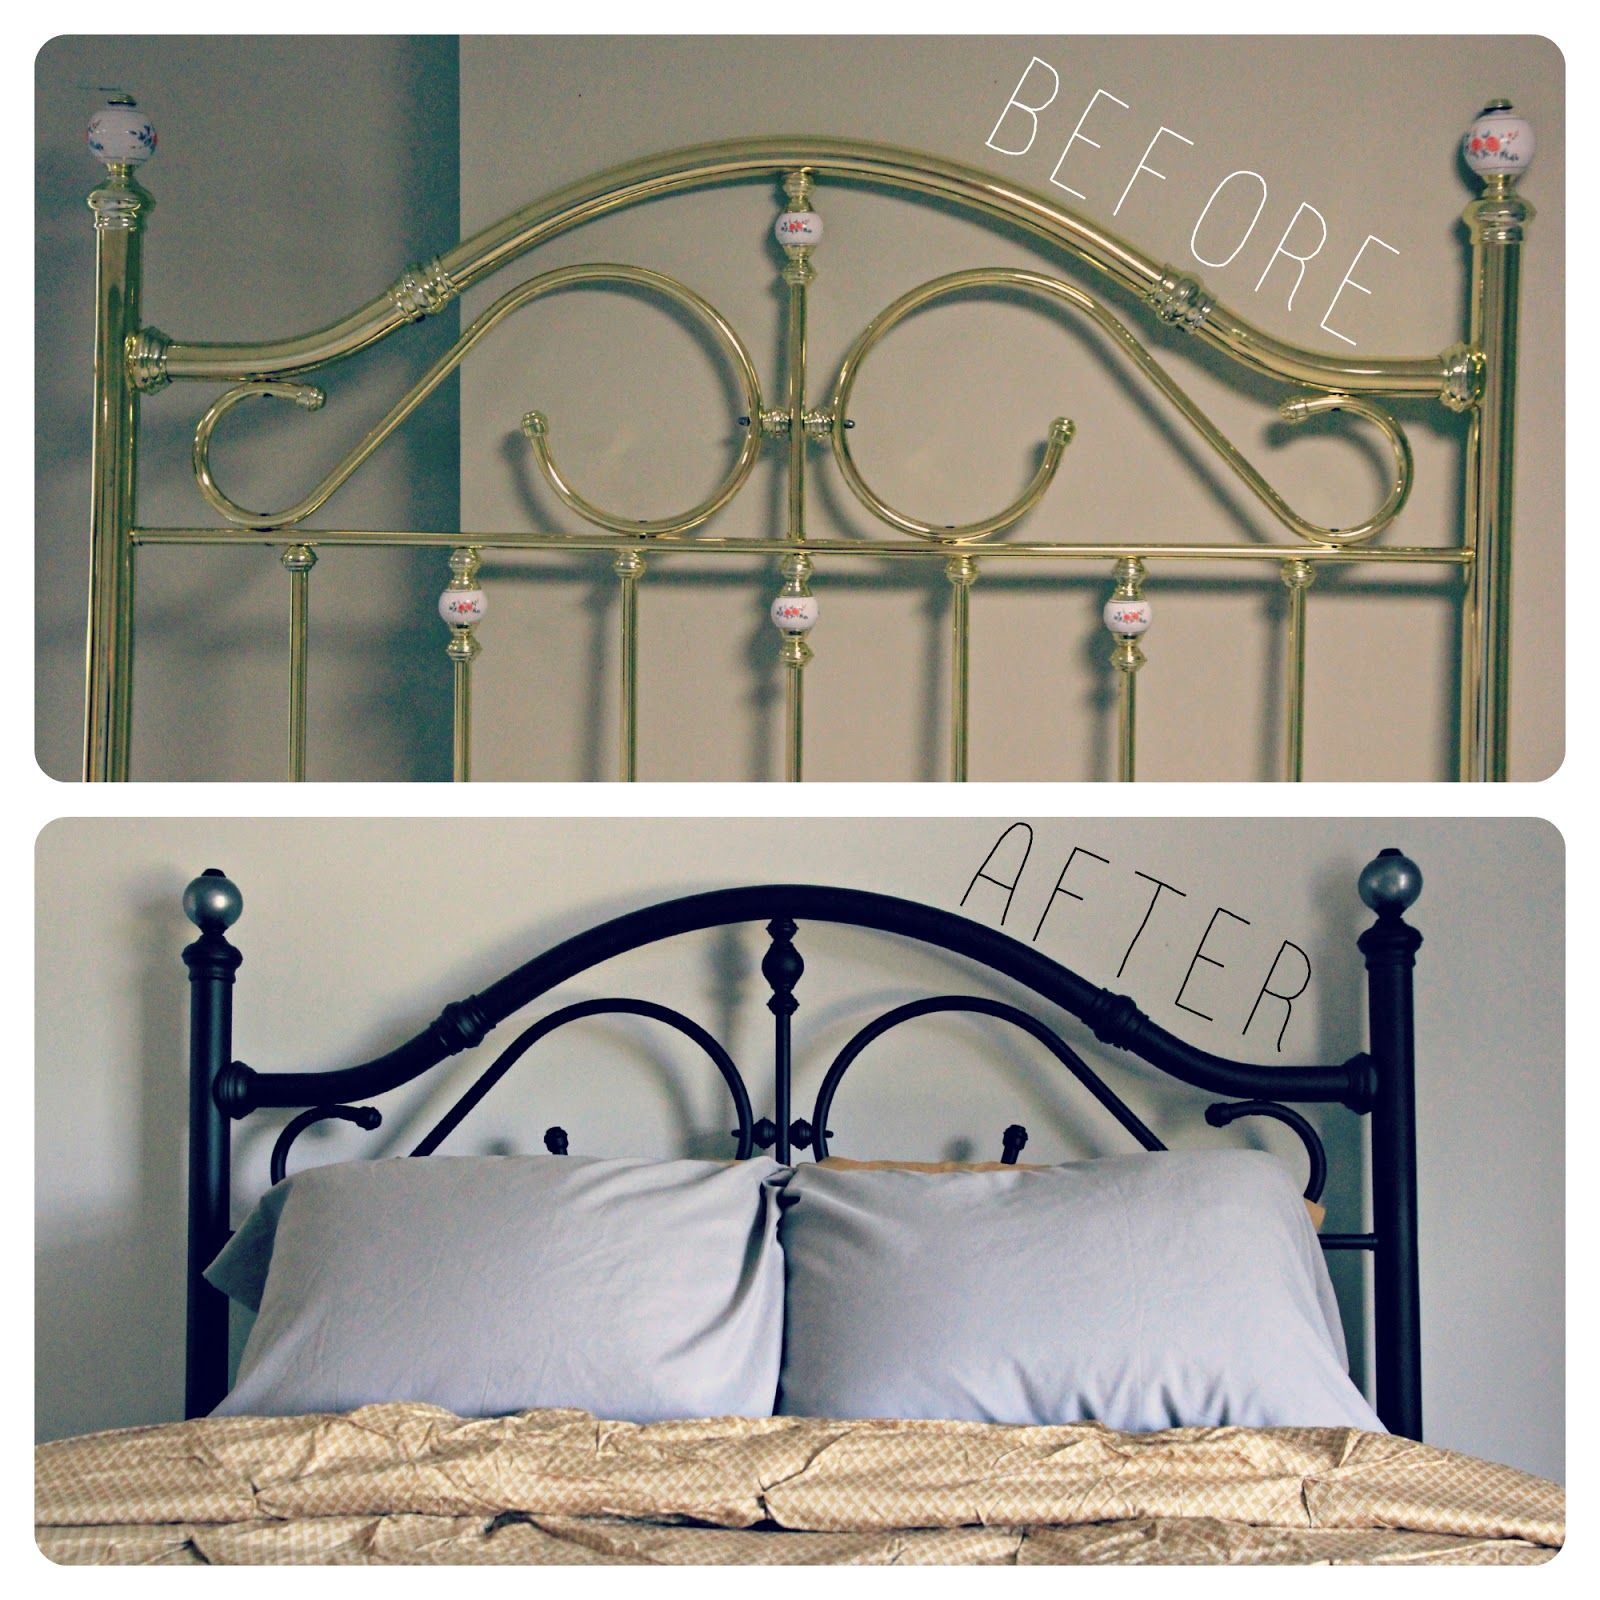 metal bed frame makeover. Black Bedroom Furniture Sets. Home Design Ideas